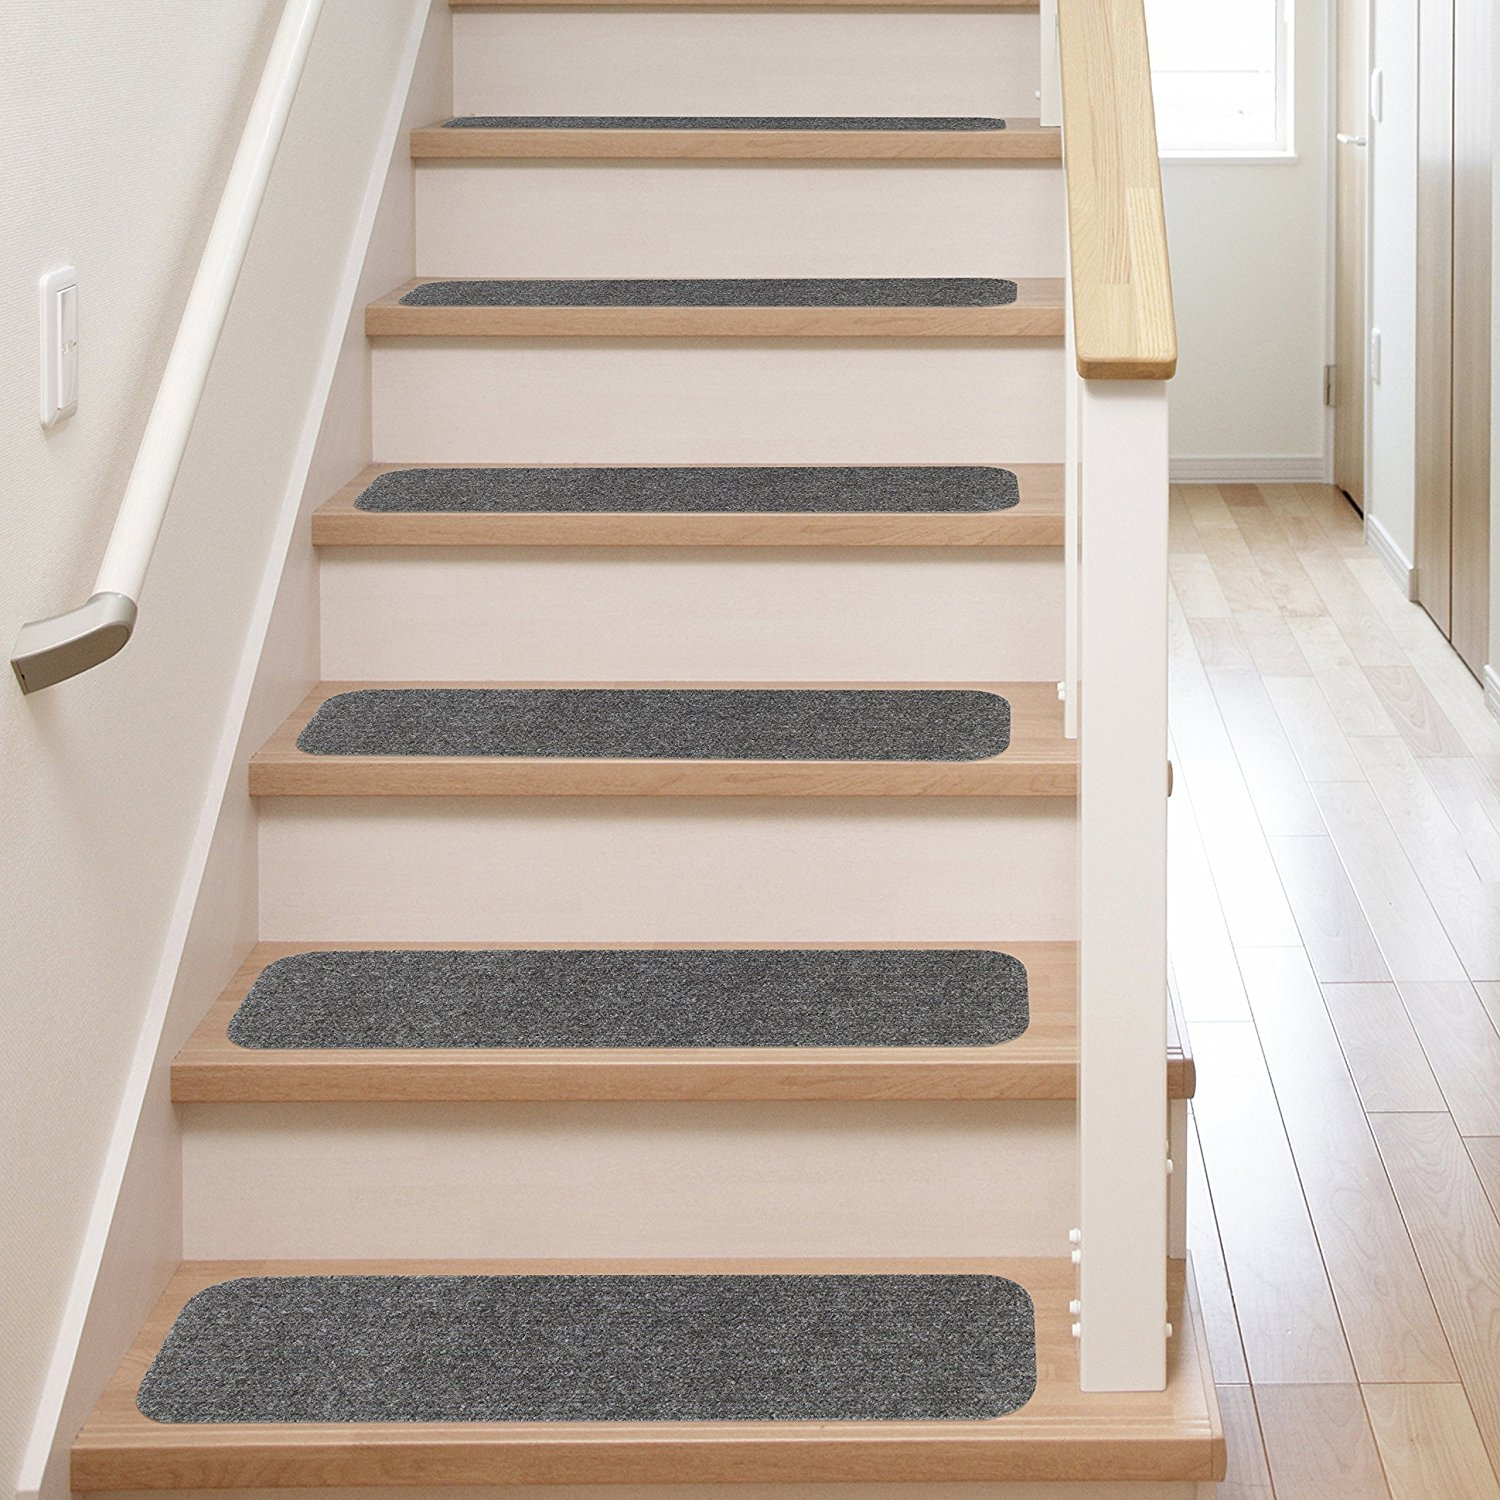 Amazon Best Sellers Best Staircase Step Treads With Stair Treads And Matching Rugs (View 12 of 15)